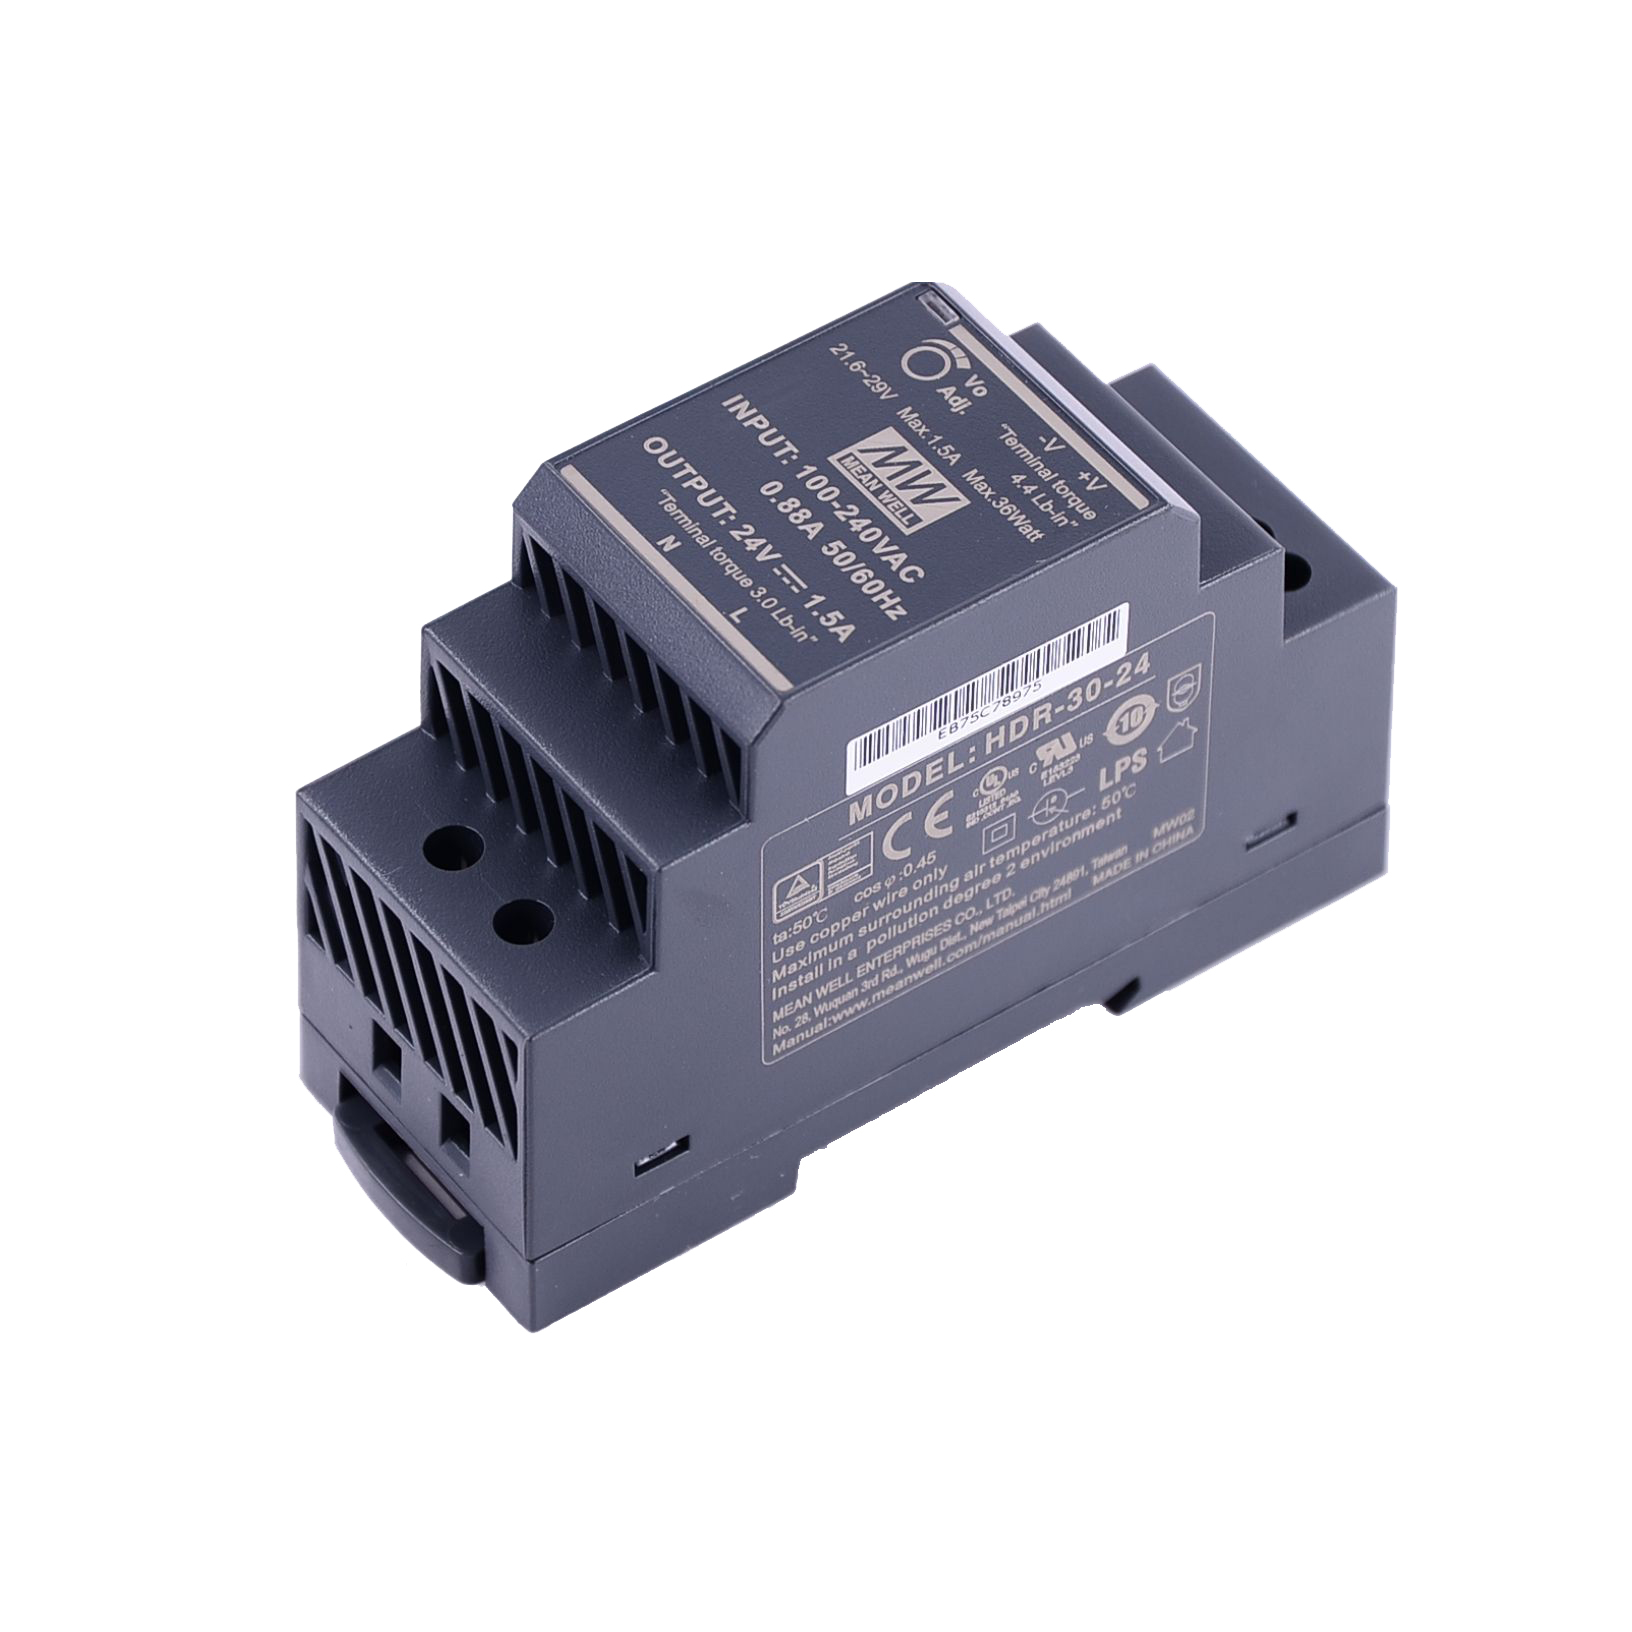 Original Mean Well HDR-15 30 60 100 150 series DC 5V 12V 15V 24V 48V meanwell Ultra Slim Step Shape DIN Rail Power Supply-2